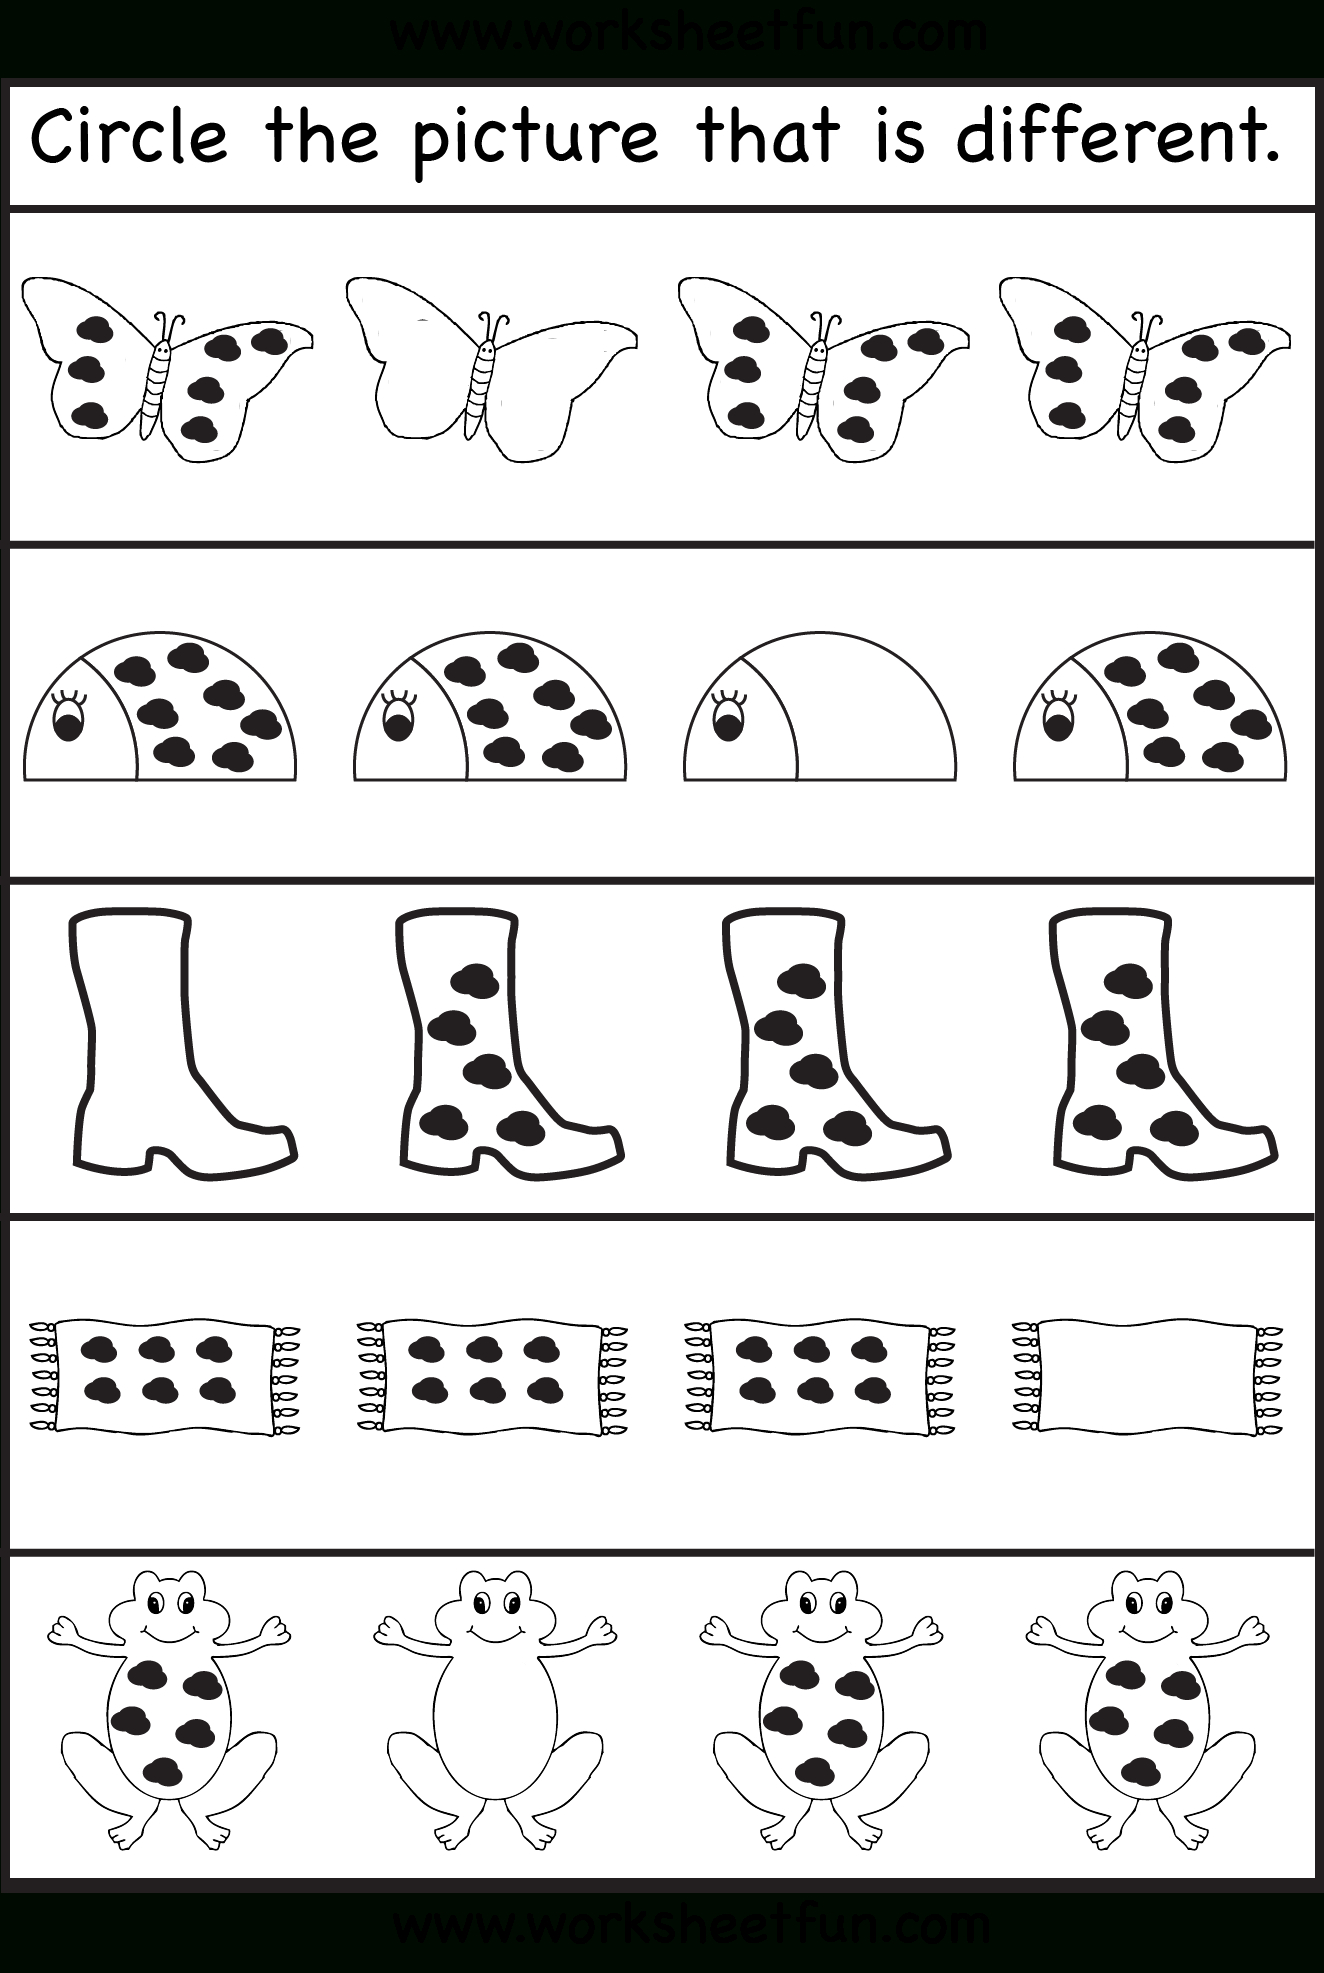 Circle The Picture That Is Different - 3 Worksheets   Printable   Printable Worksheets For 3 Year Olds